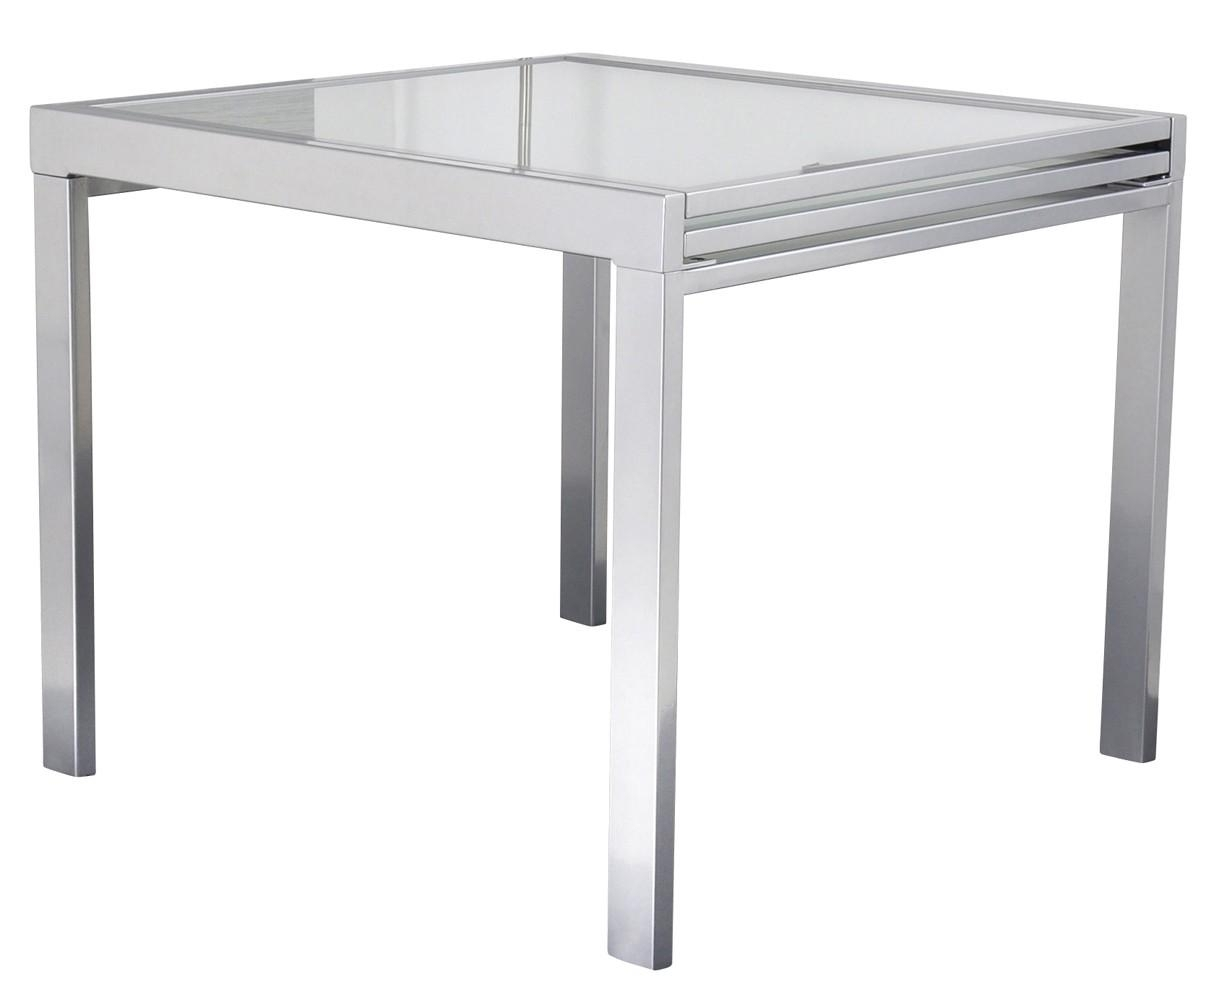 Les tendances table carr e extensible grise for Table blanc laquee carree extensible